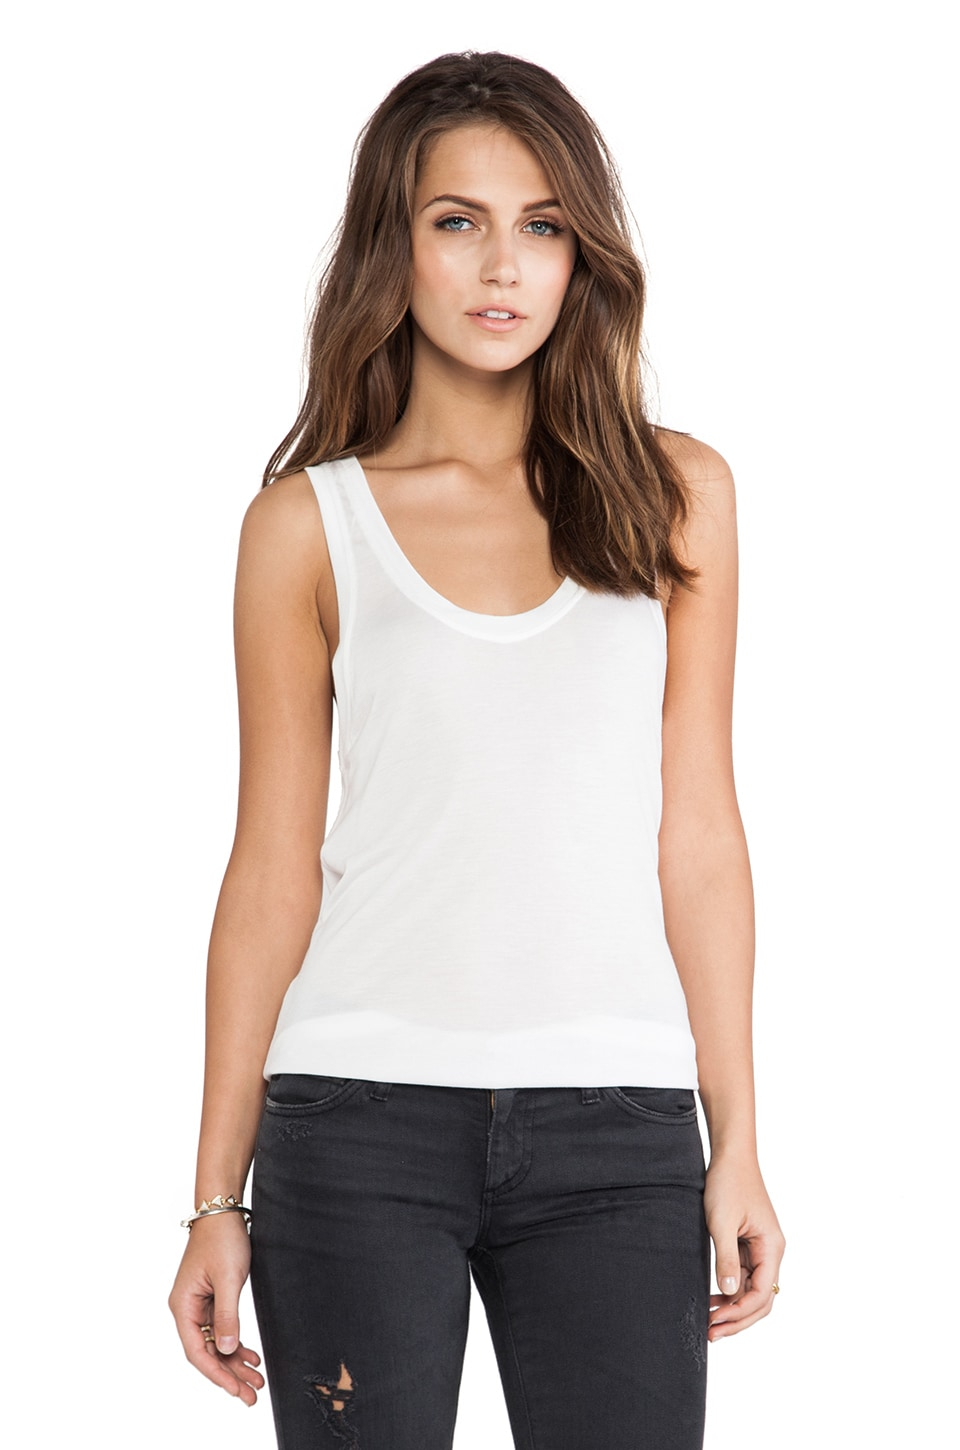 AG Adriano Goldschmied Wren Tank in White